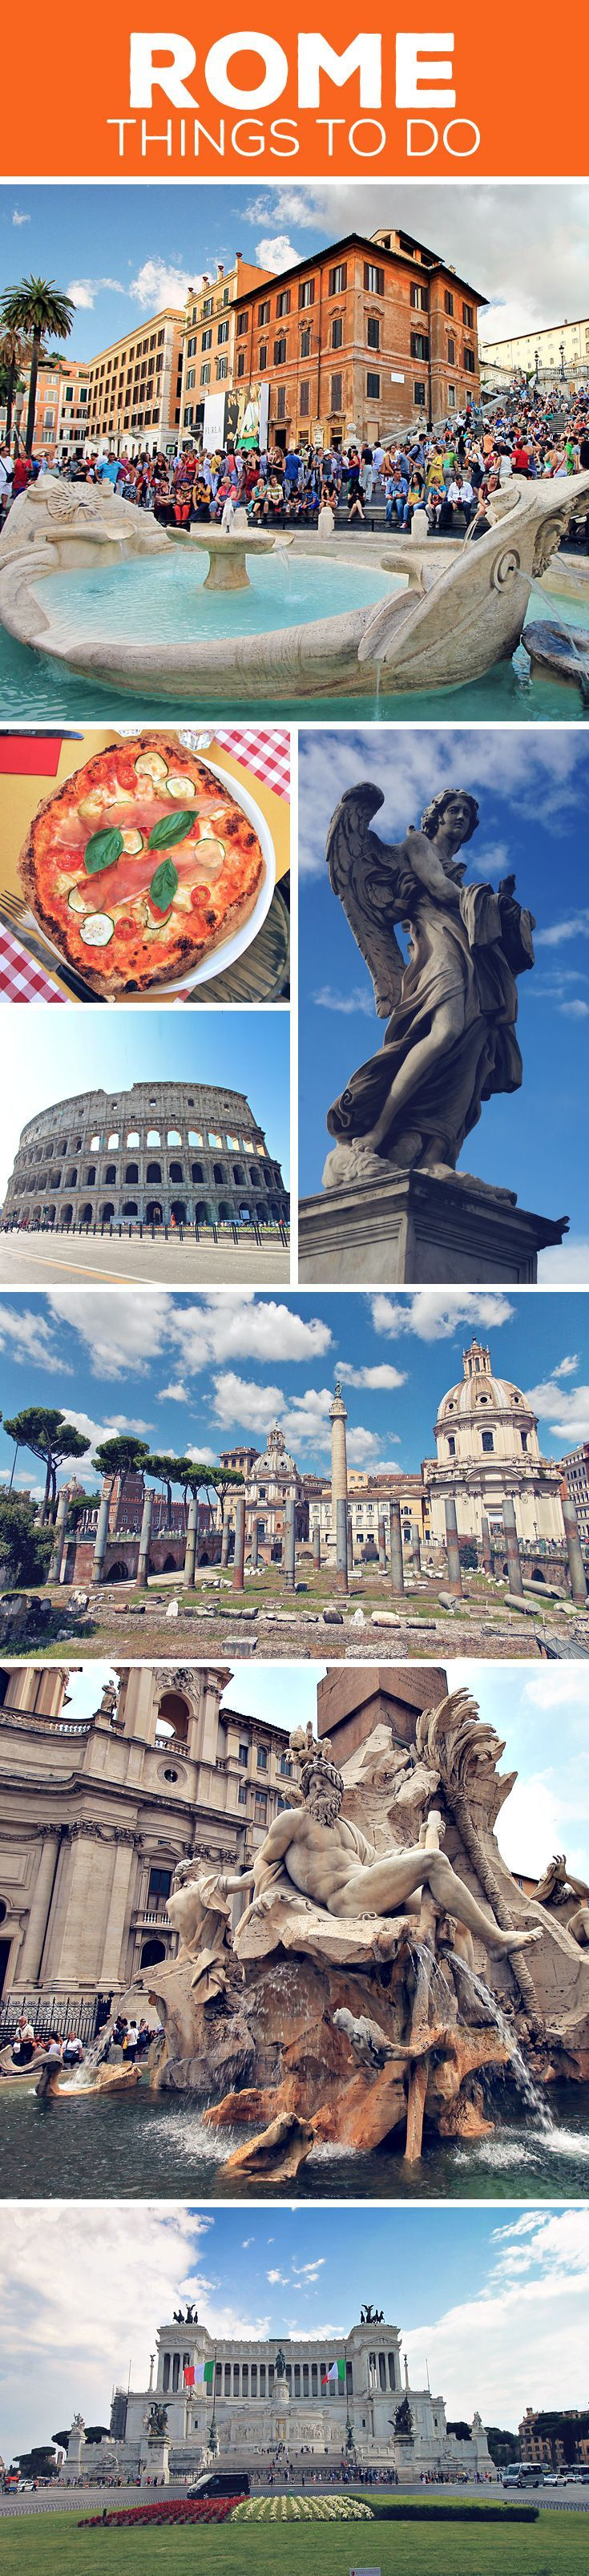 Sightseeing tips and things to do in Rome, Italy: Colosseum |  Pantheon | Roman Forum | Piazza Navona | Spanish Steps | Trevi Fountain | Altare della Patria | Vatican City | More on my blog: How To Travel Italy By Train - A First Timer's Guide incl. Things To Do And Places To Stay (just click on the image) via @Just1WayTicket | Interrail Eurail Europe Train Travel